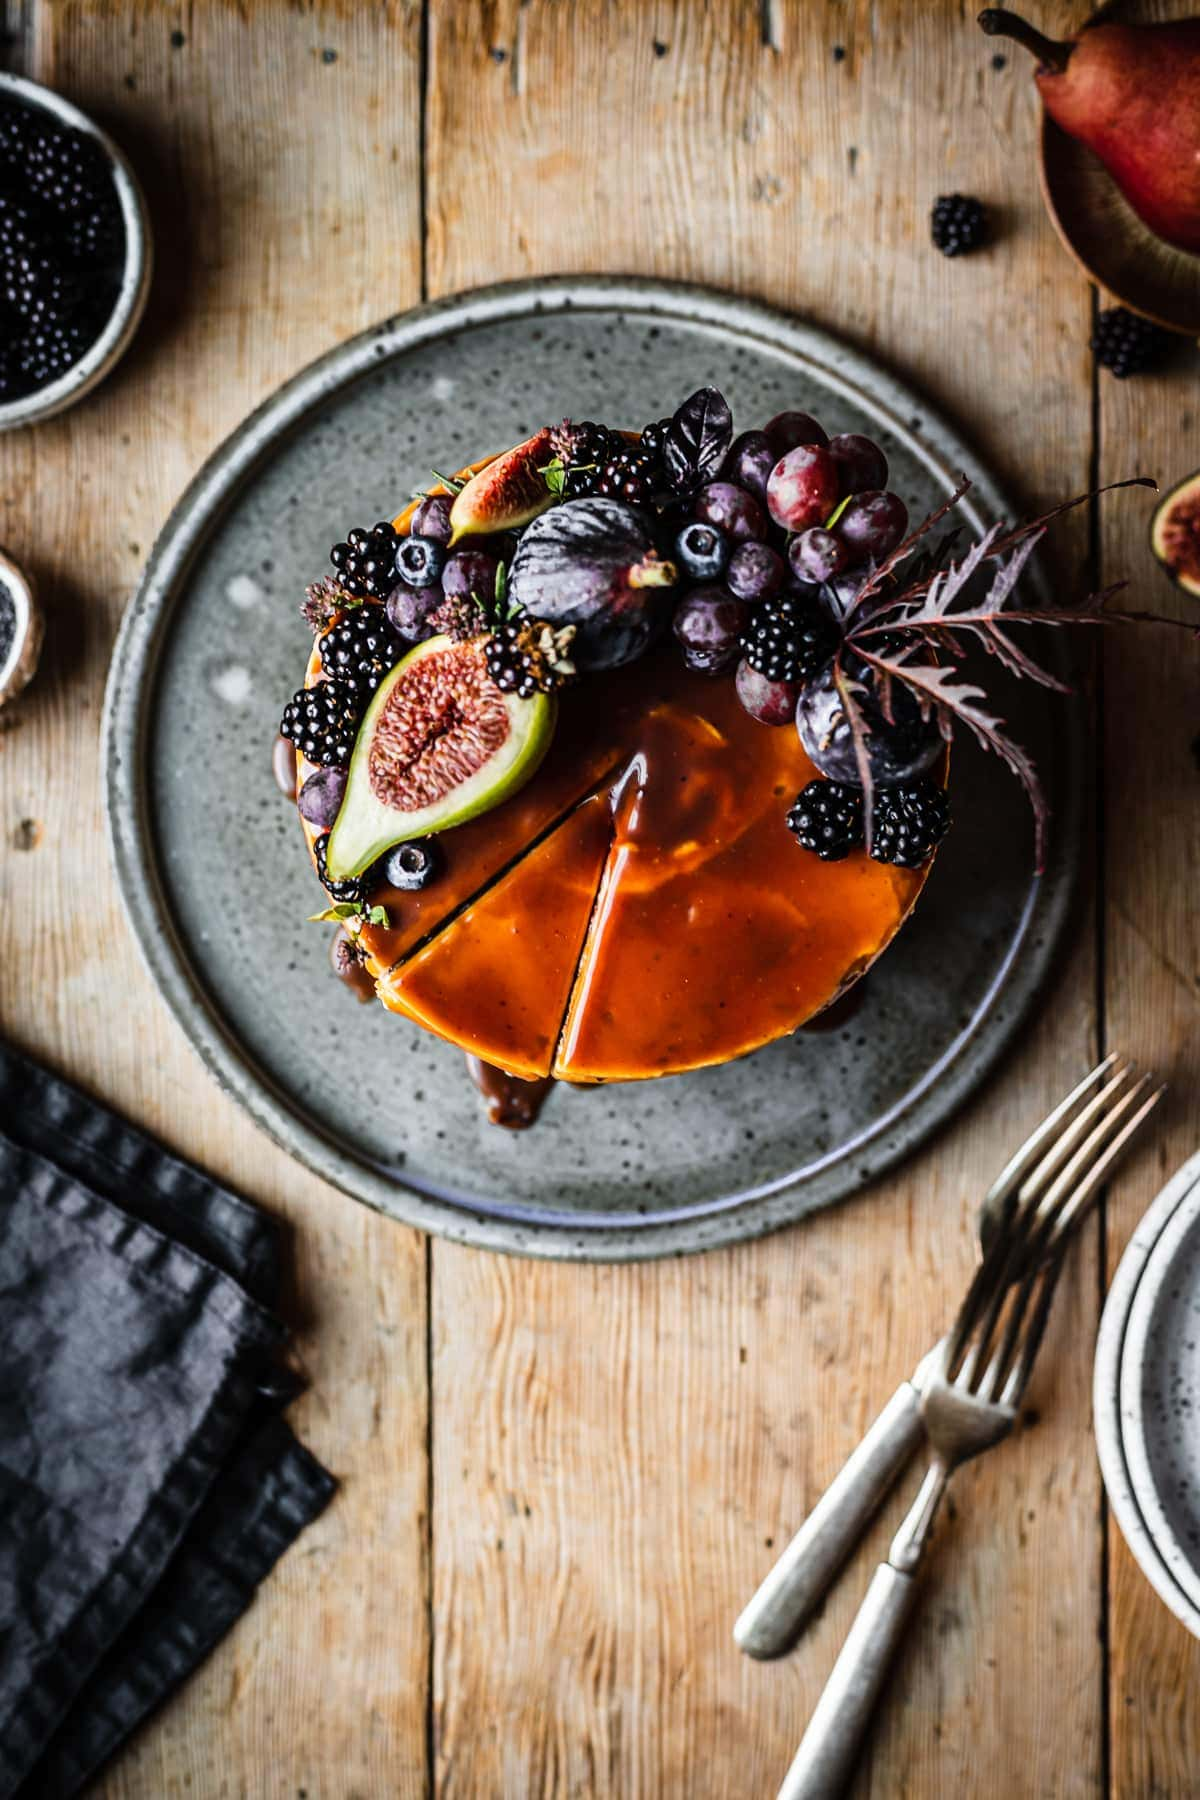 Top view of a cake topped with caramel and a crescent shaped crown of late summer fruit, including figs, blackberries and grapes. A slice of cake has been cut but not removed. The cake sits on a blue grey ceramic platter on a rustic wooden table with forks, a dark blue napkin, and small bowls of poppy seeds and blackberries nearby.